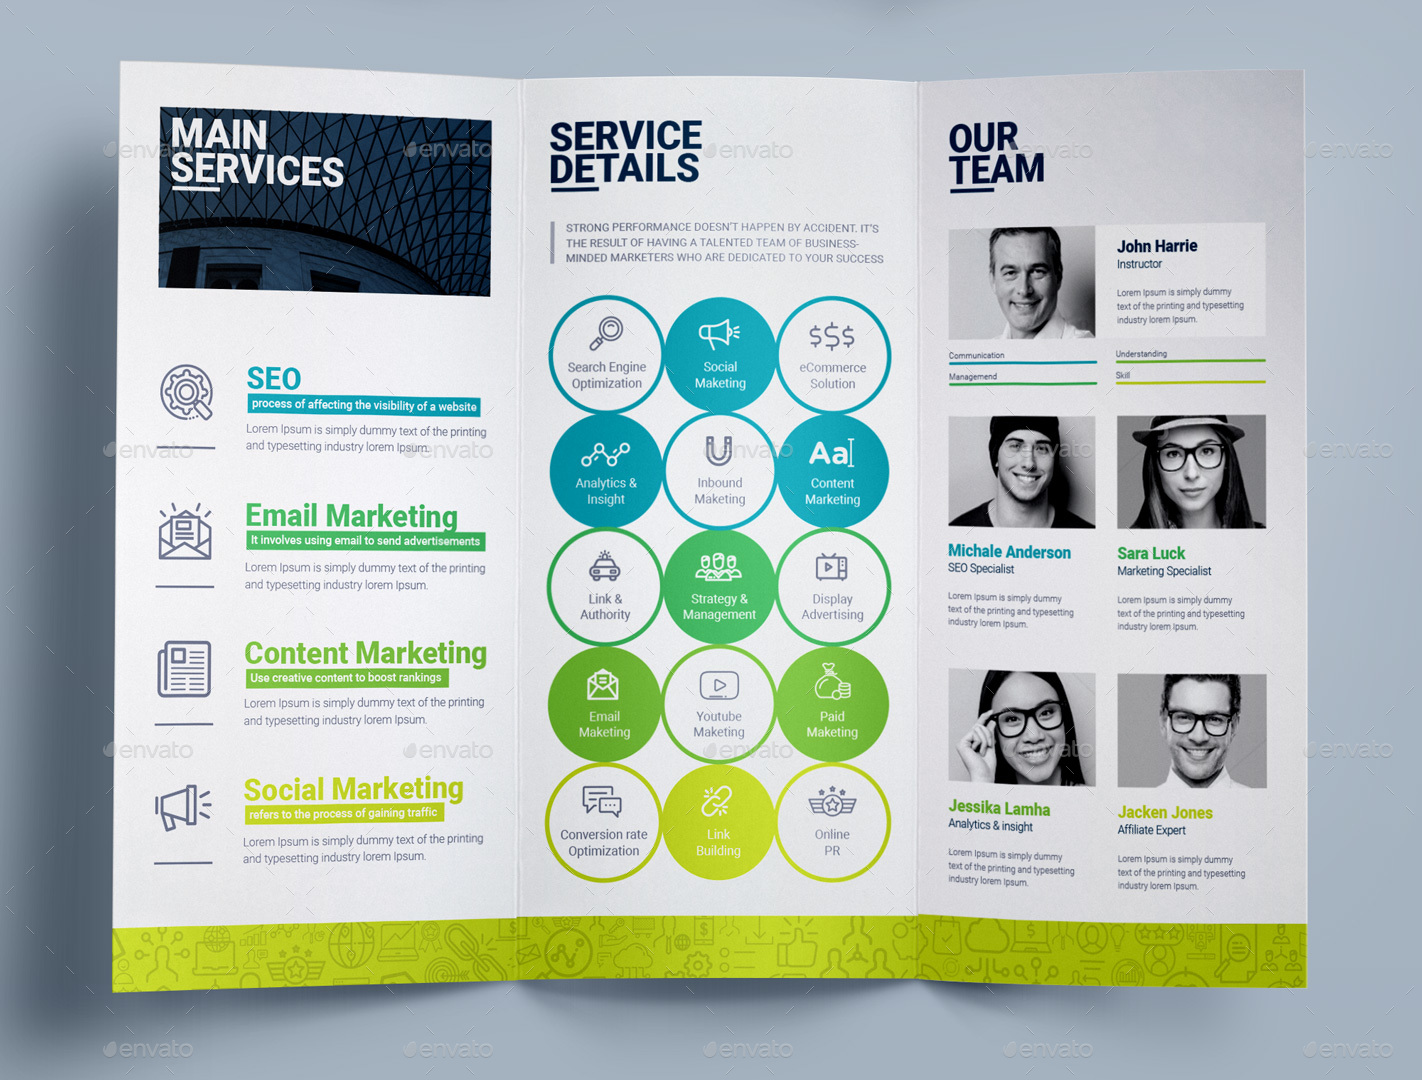 Charming 1 Page Resume Format Free Download Huge 100 Free Resume Builder And Download Regular 100 Free Resume Builder Online 1099 Contract Template Young 15 Year Old Resume Purple2 Circle Template Tri Fold Brochure Template For SEO (Search Engine Optimization ..